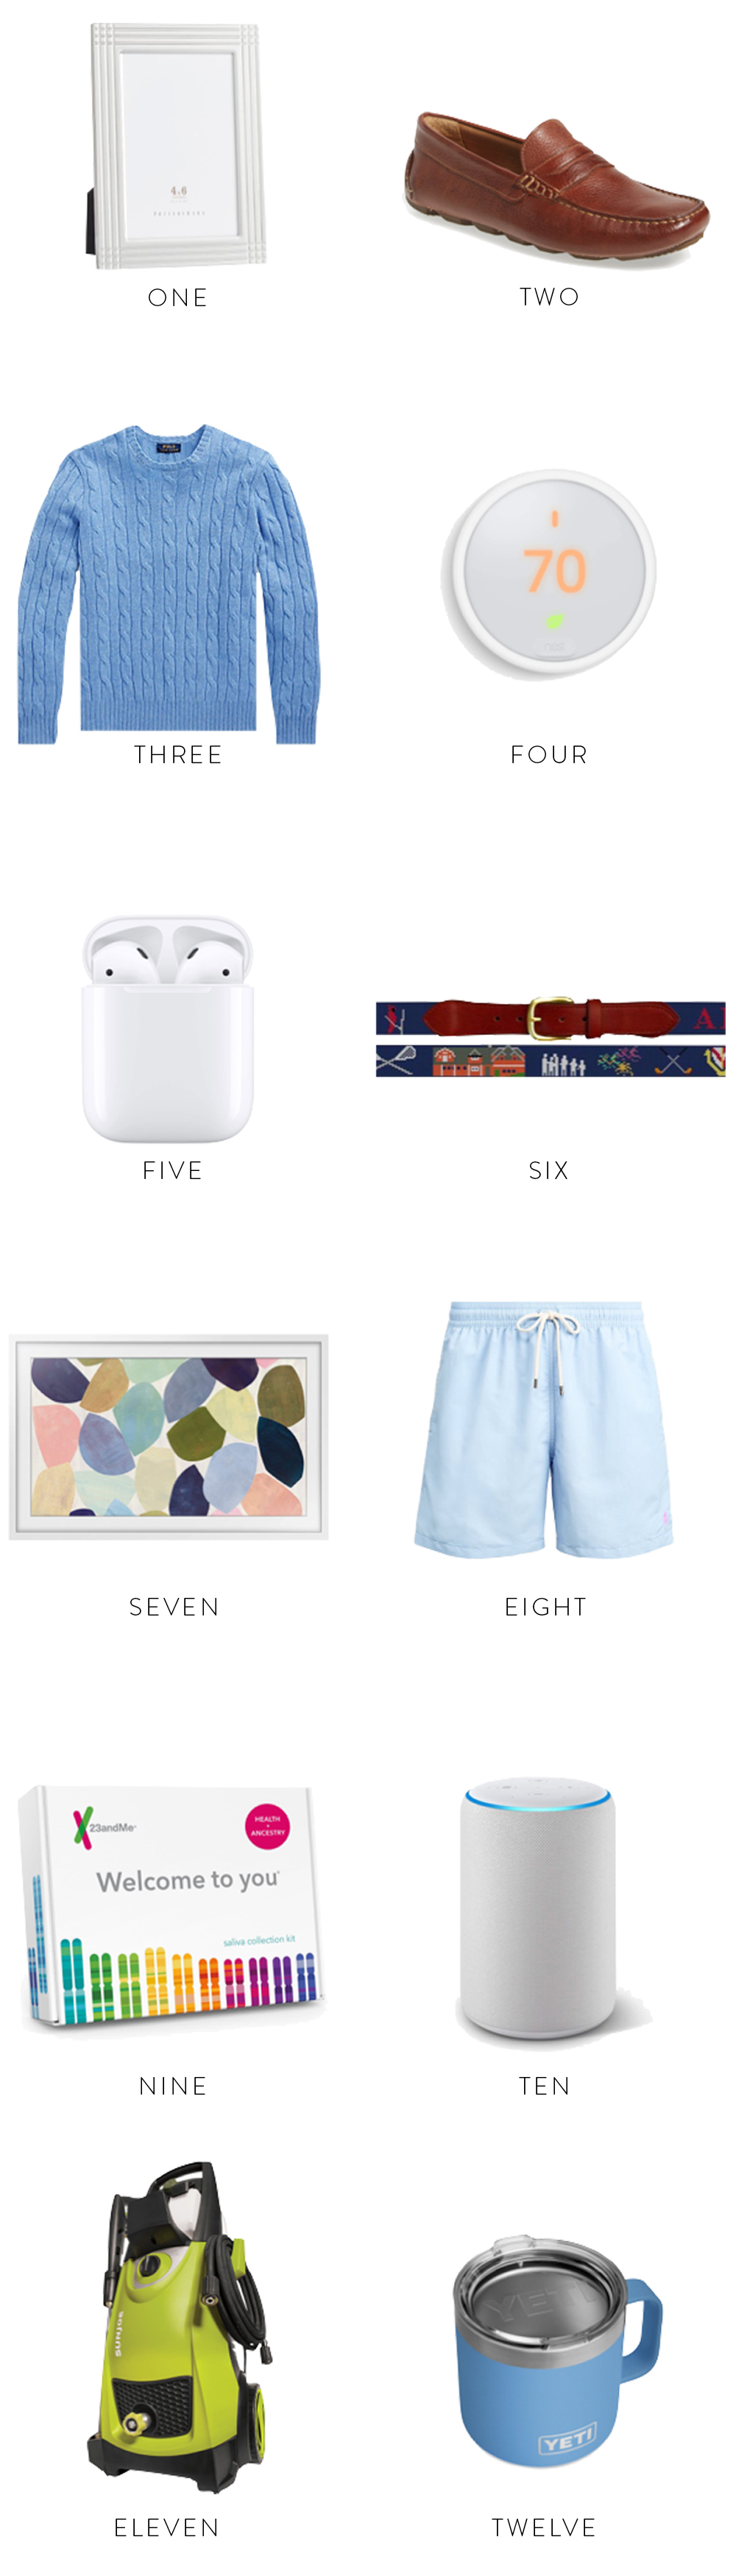 father's day gift ideas on design darling 2020